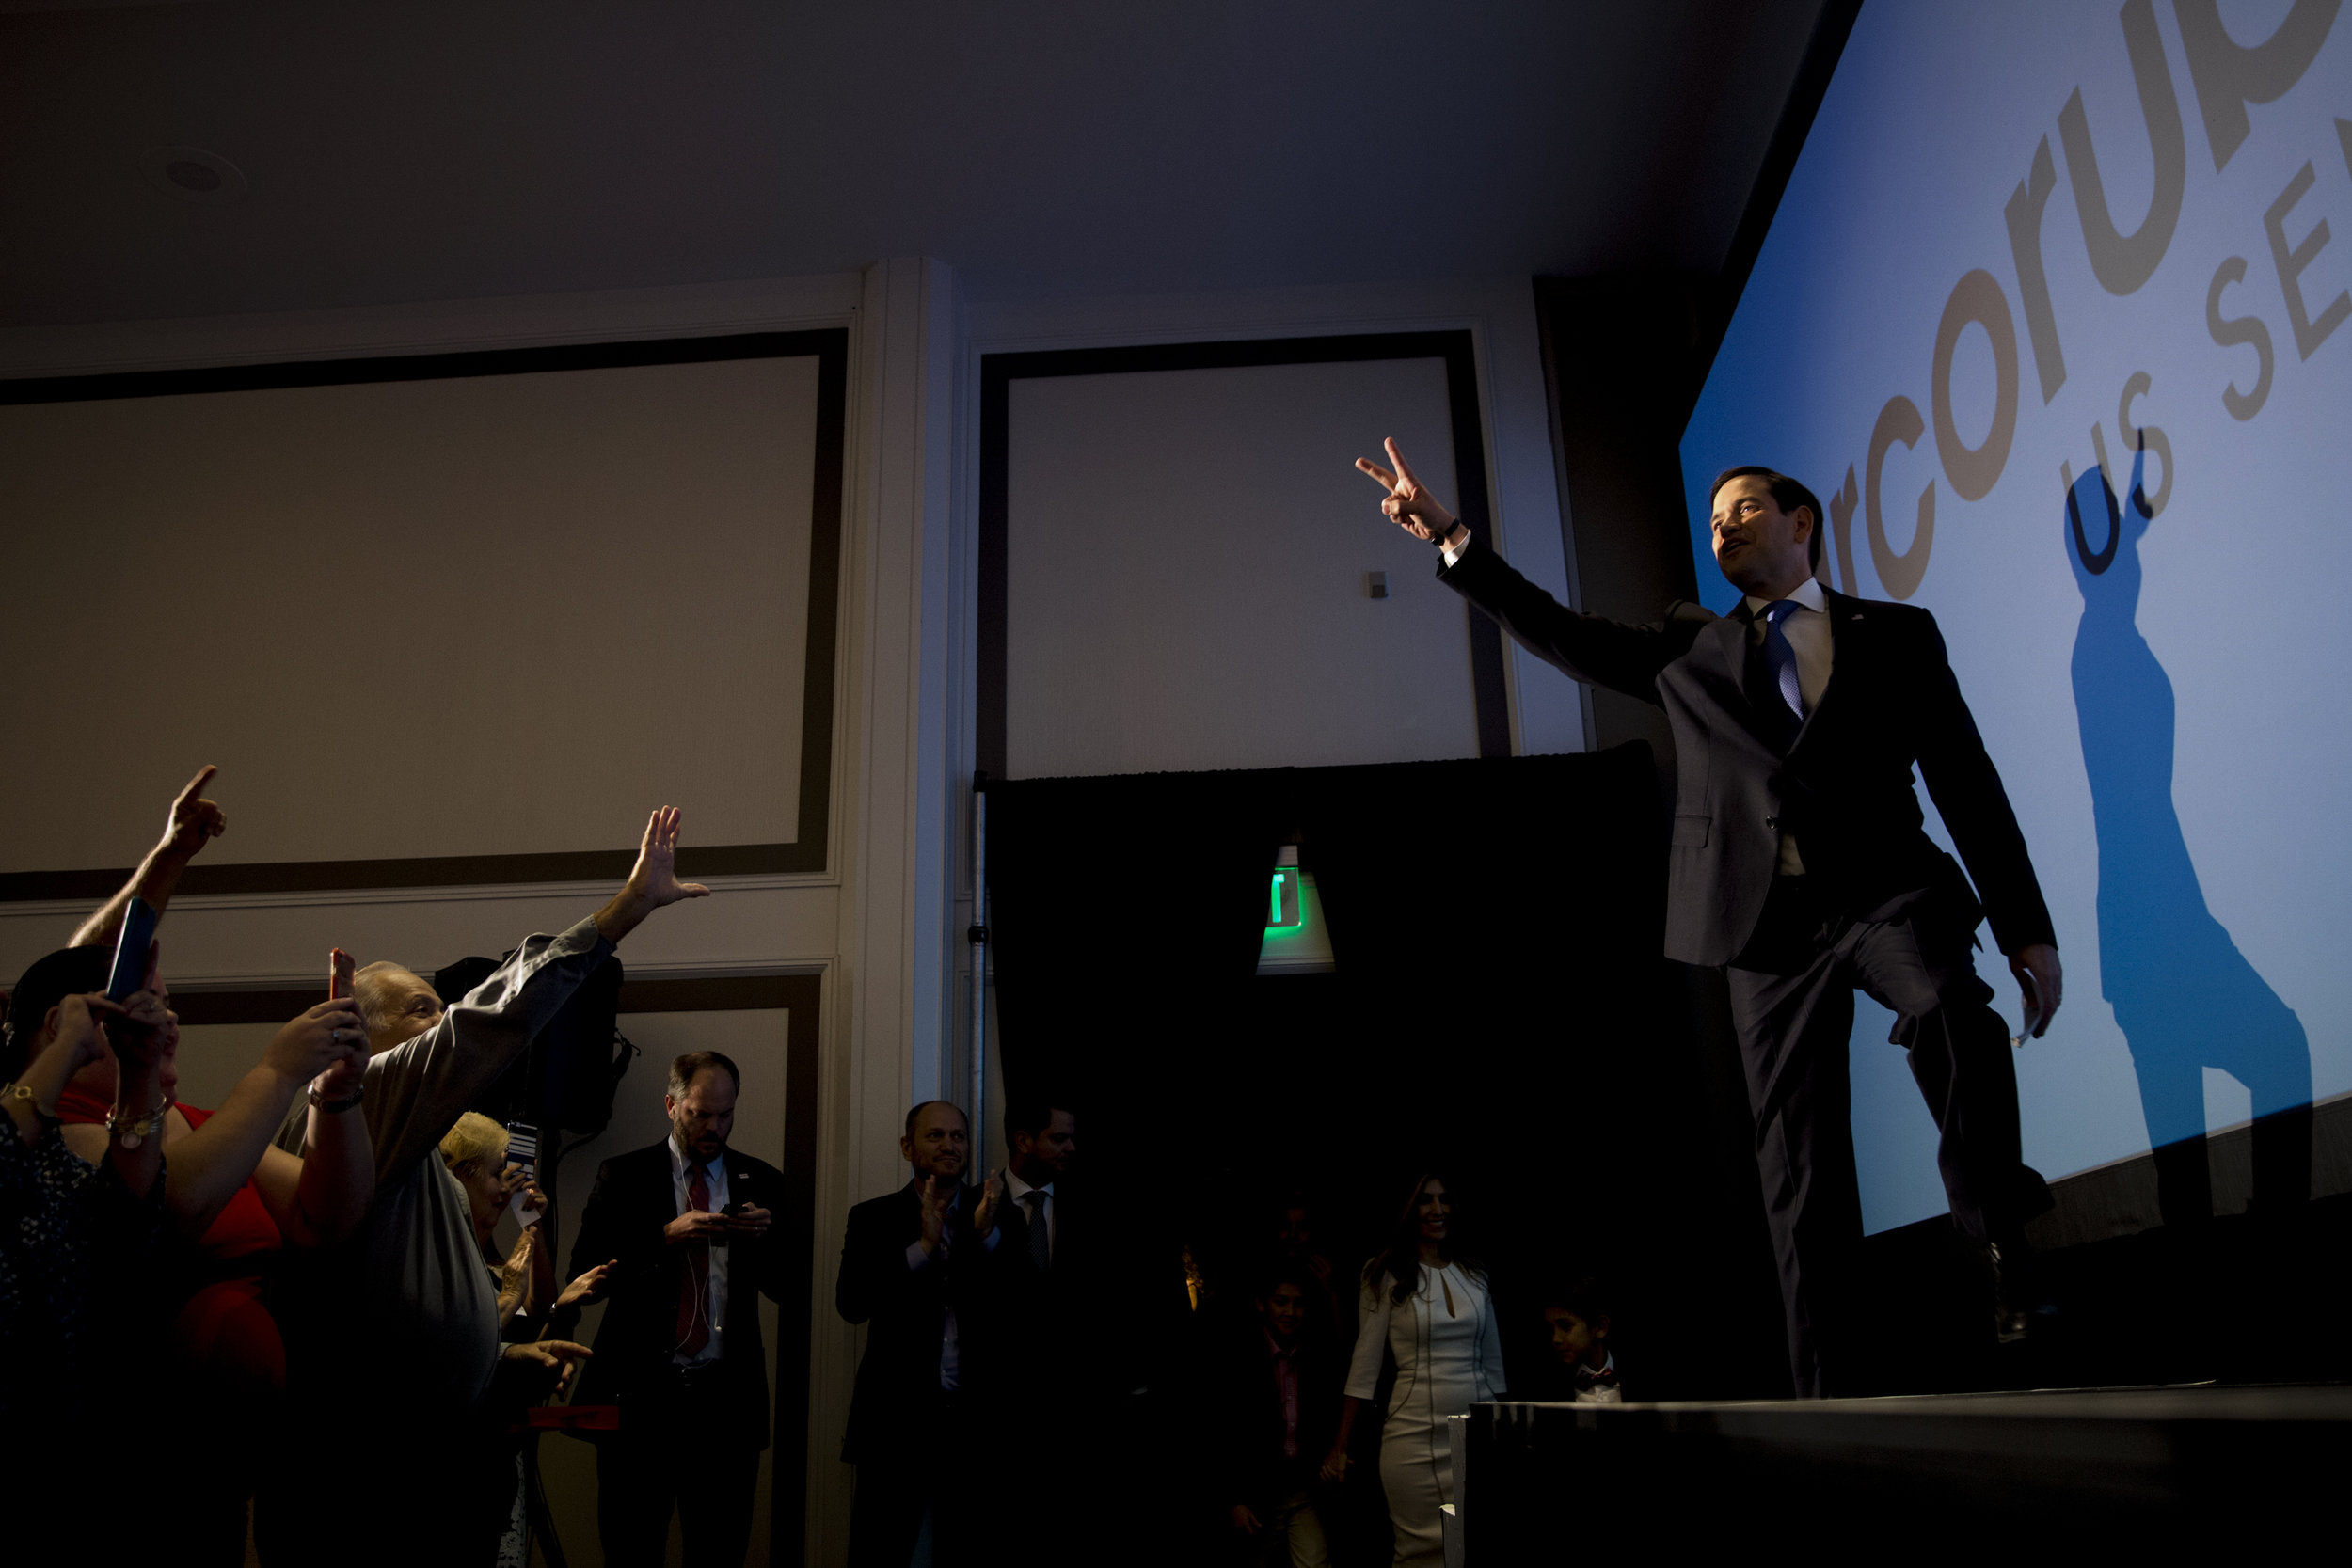 Re-elected U.S. Senator of Florida Marco Rubio makes his grand entrance to a crowd of supporters during his election watch party at the Hilton Miami Airport Tuesday, Nov. 8, 2016 in Miami.